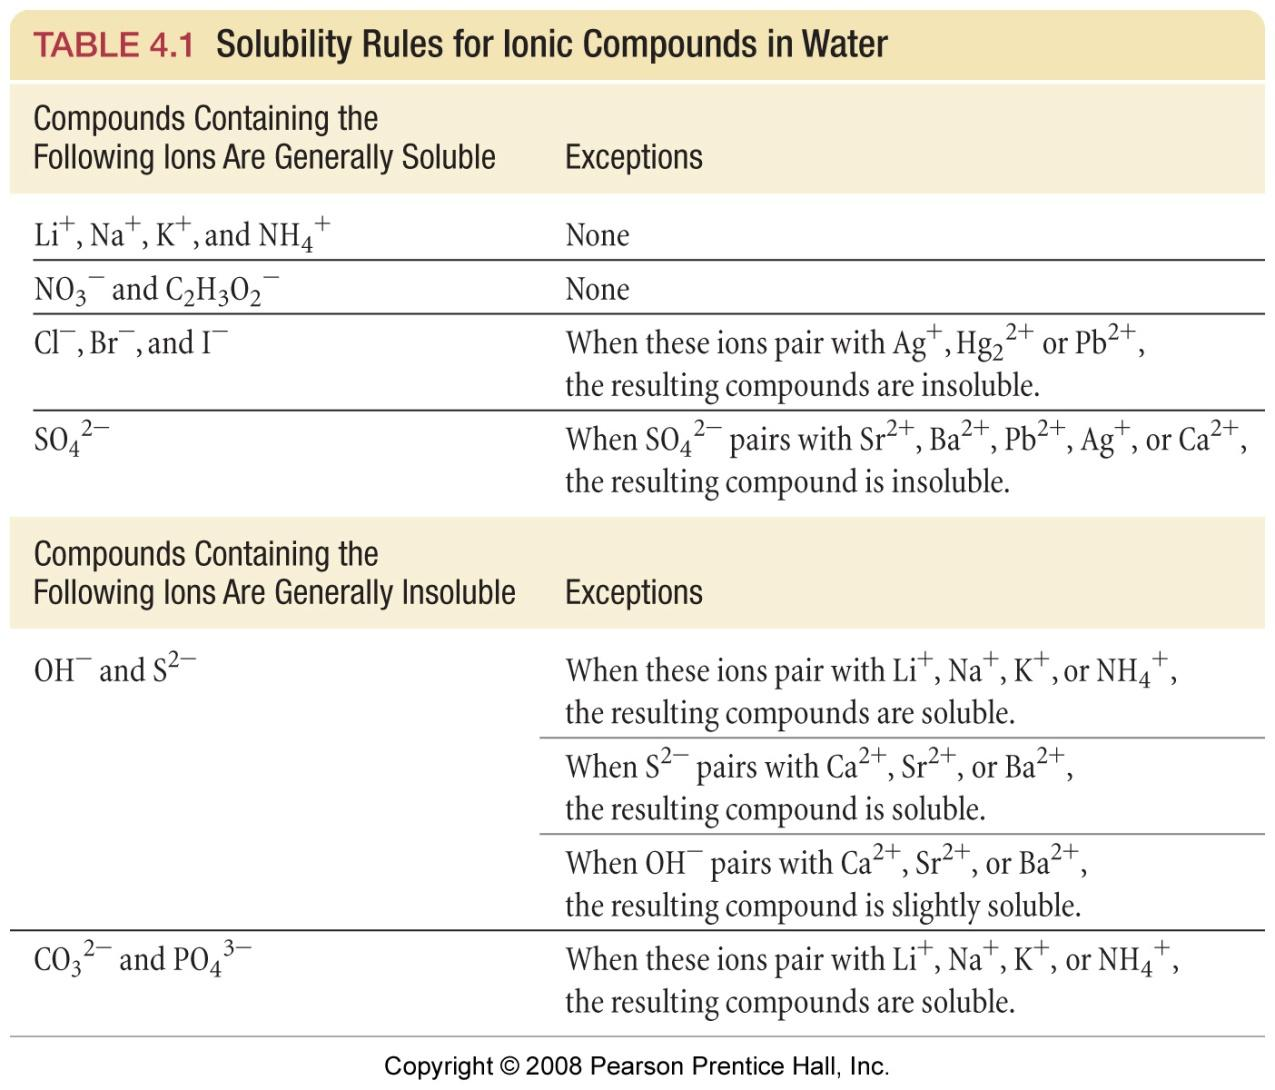 Solubility rools OK